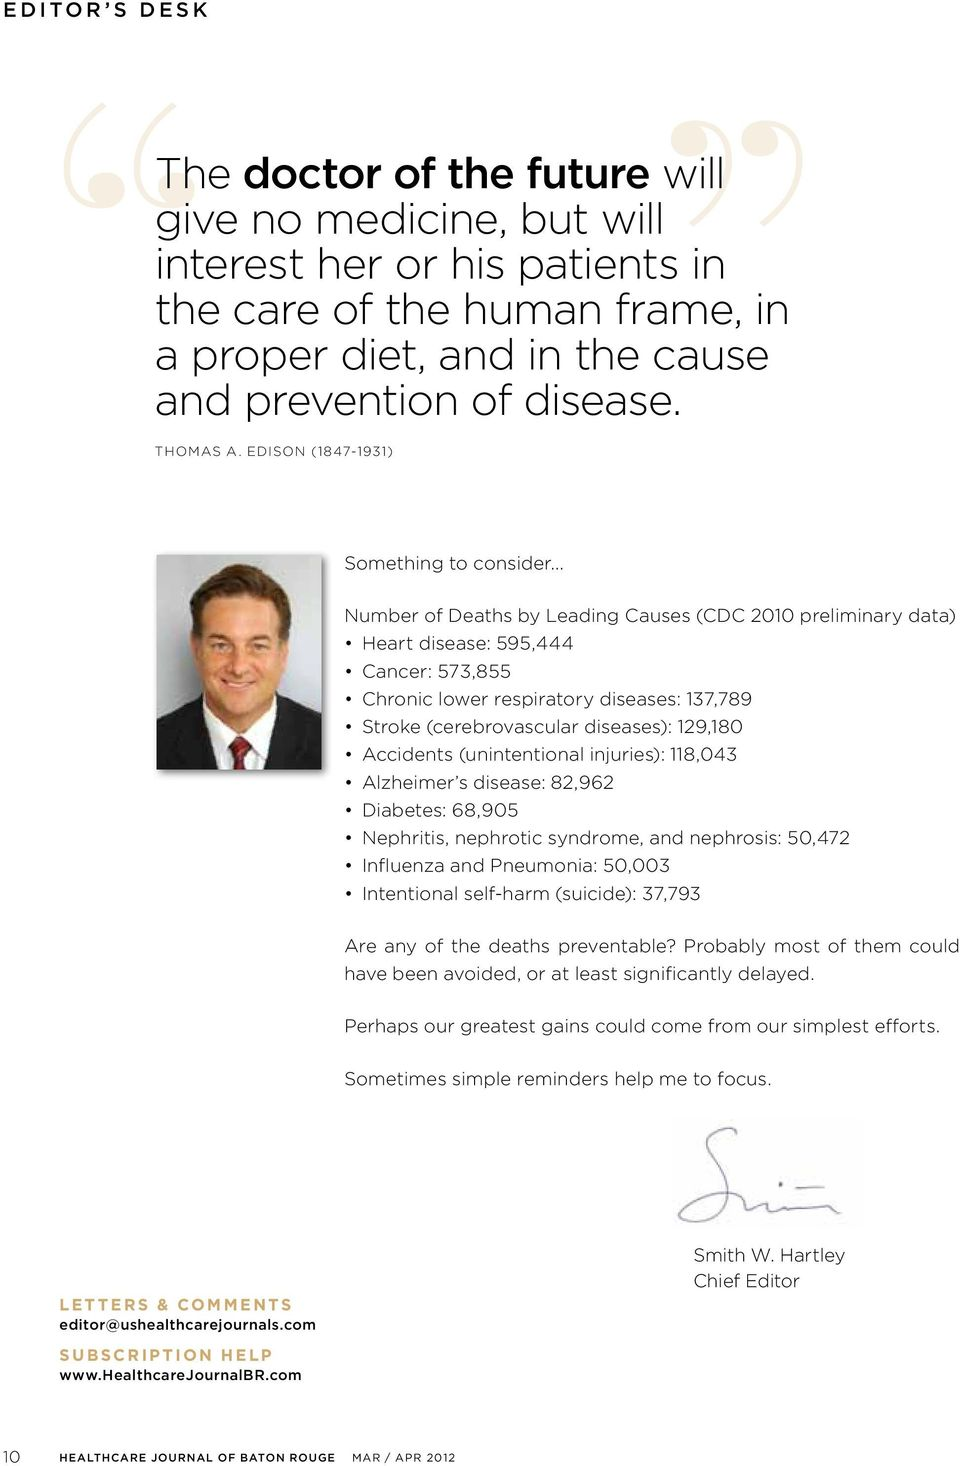 .. Number of Deaths by Leading Causes (CDC 2010 preliminary data) Heart disease: 595,444 Cancer: 573,855 Chronic lower respiratory diseases: 137,789 Stroke (cerebrovascular diseases): 129,180